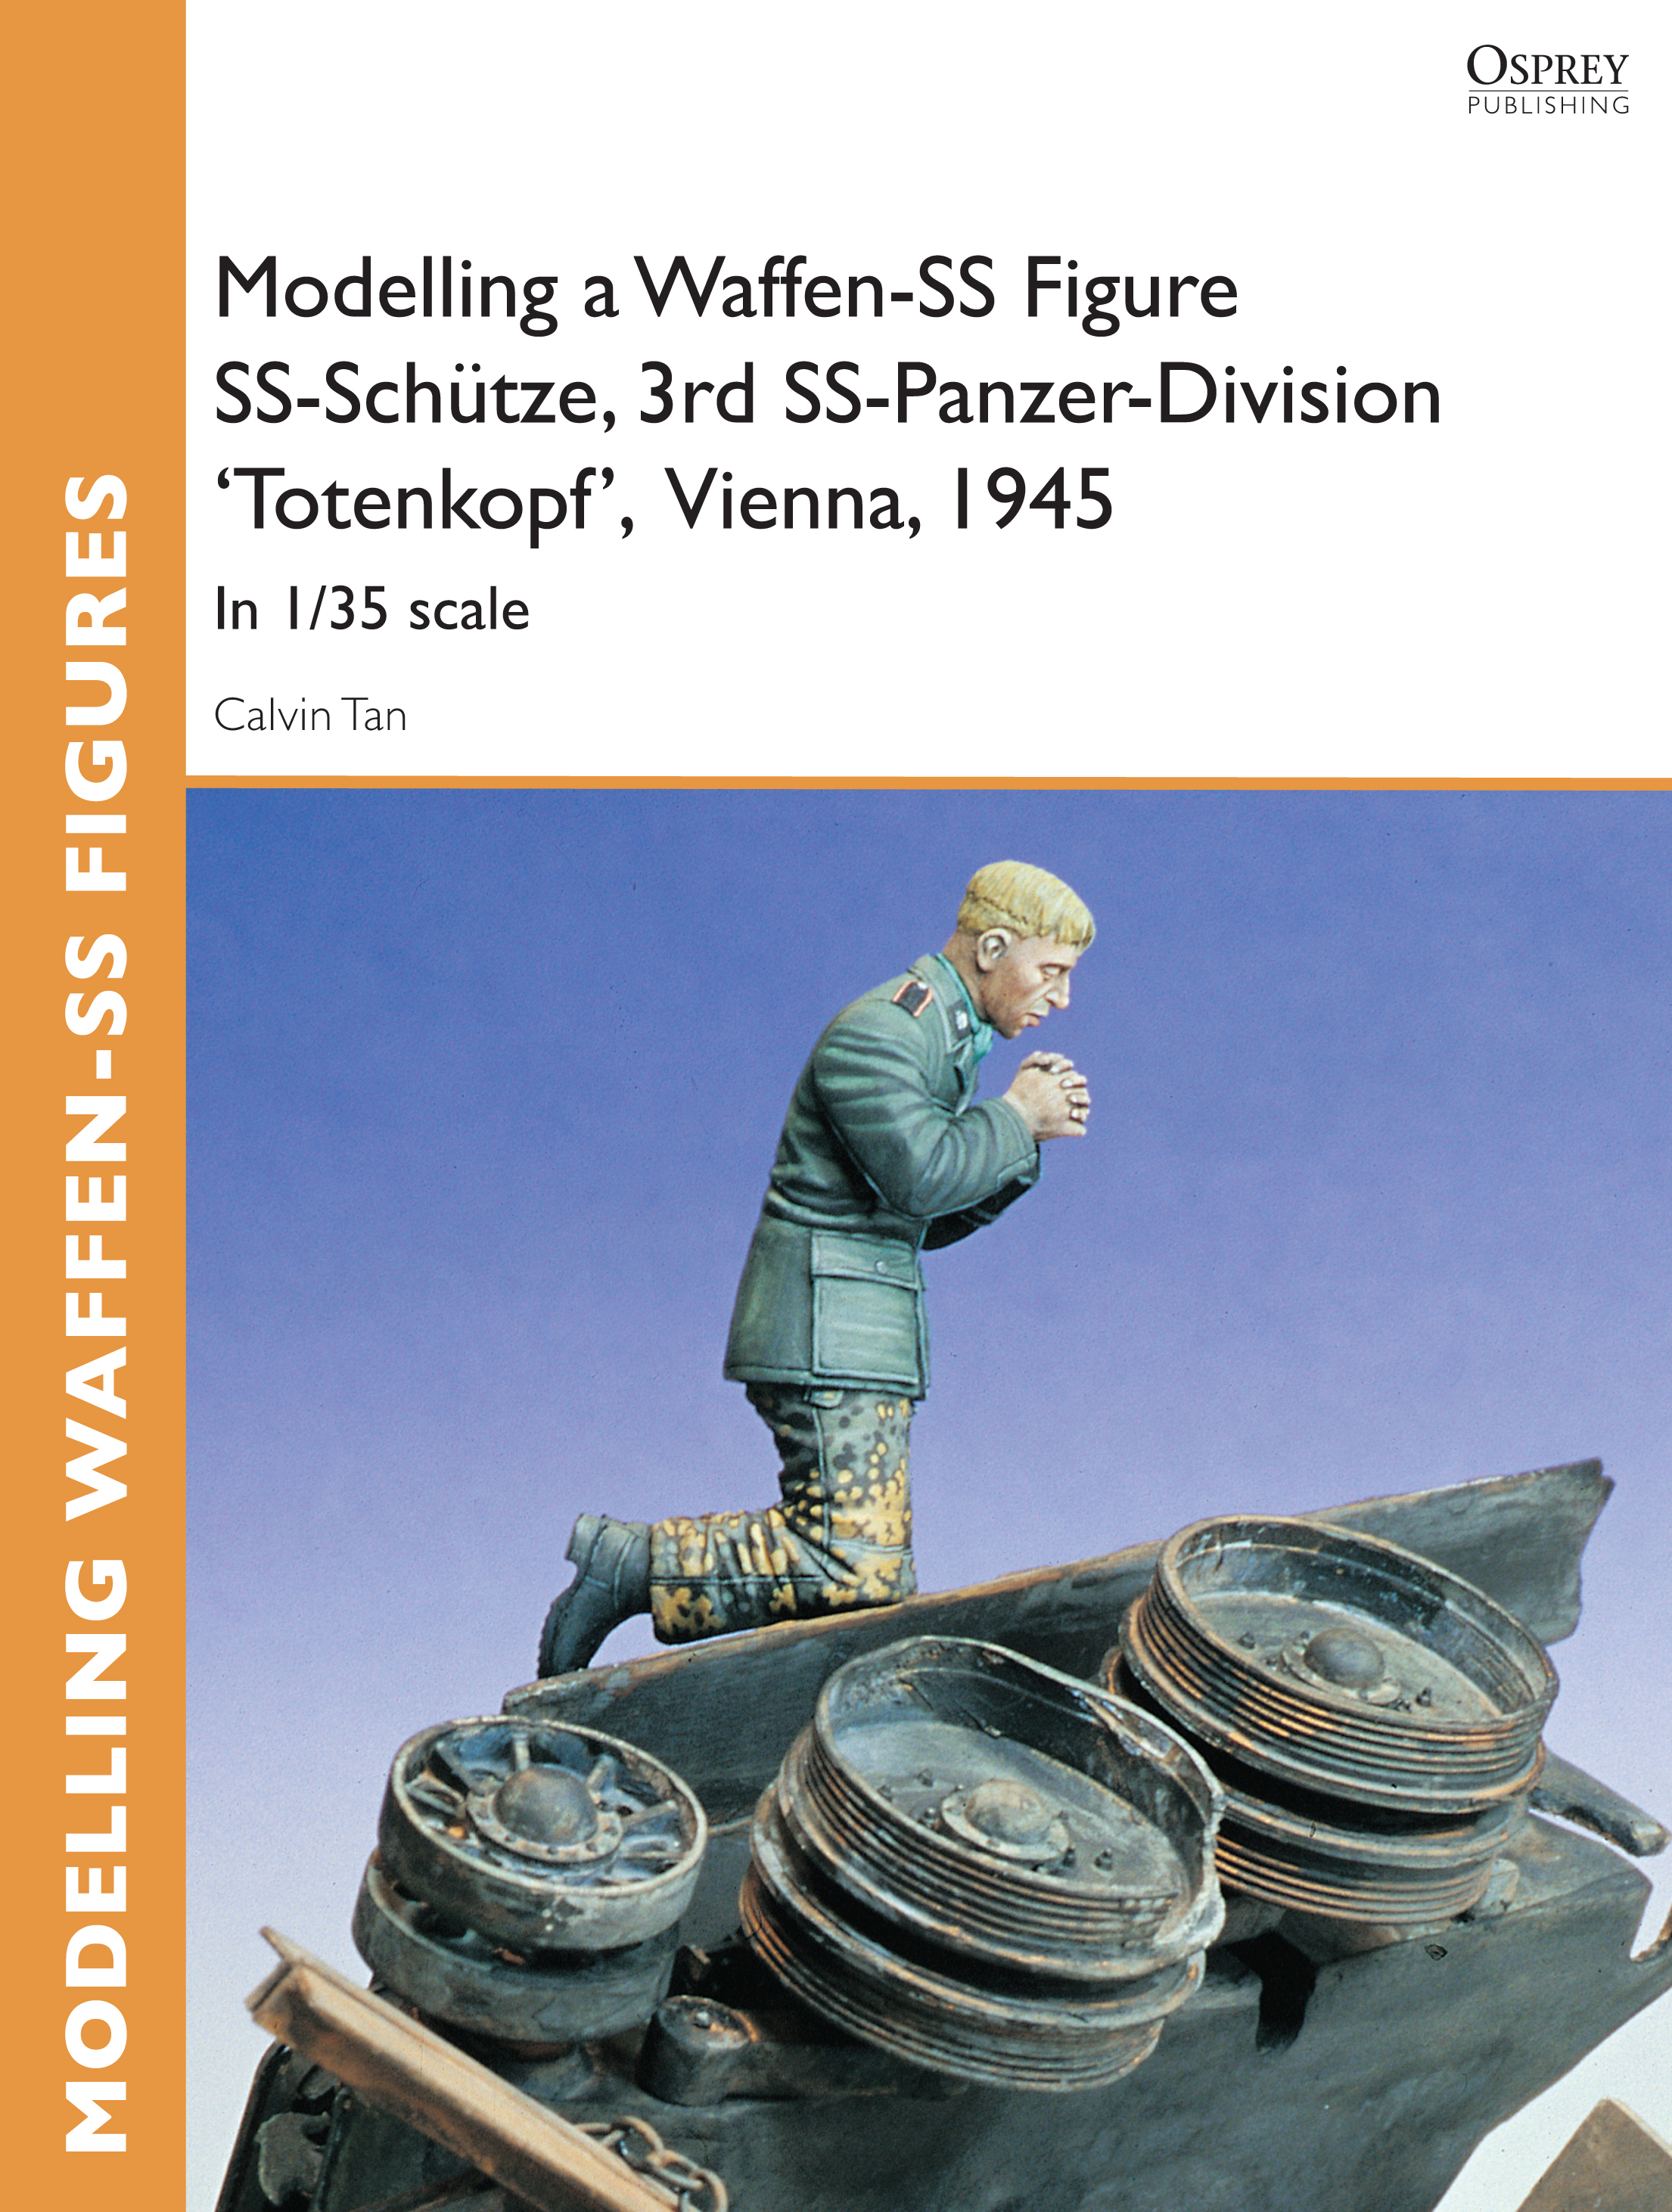 Modelling a Waffen-SS Figure SS-Sch�tze,  3rd SS-Panzer-Division 'Totenkopf' Vienna,  1945: In 1/35 scale